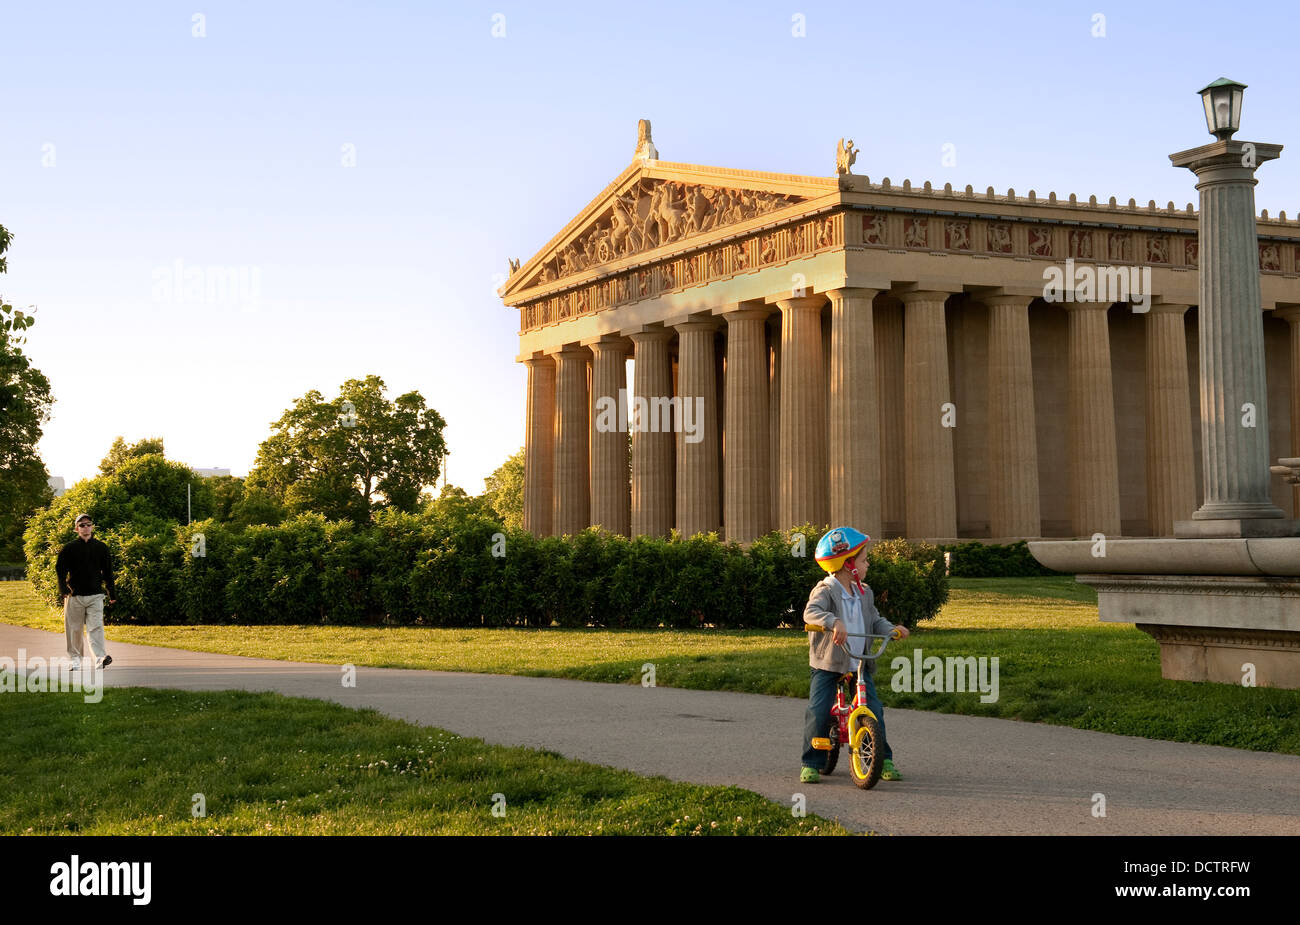 Tn Stock Photos & Tn Stock Images - Alamy